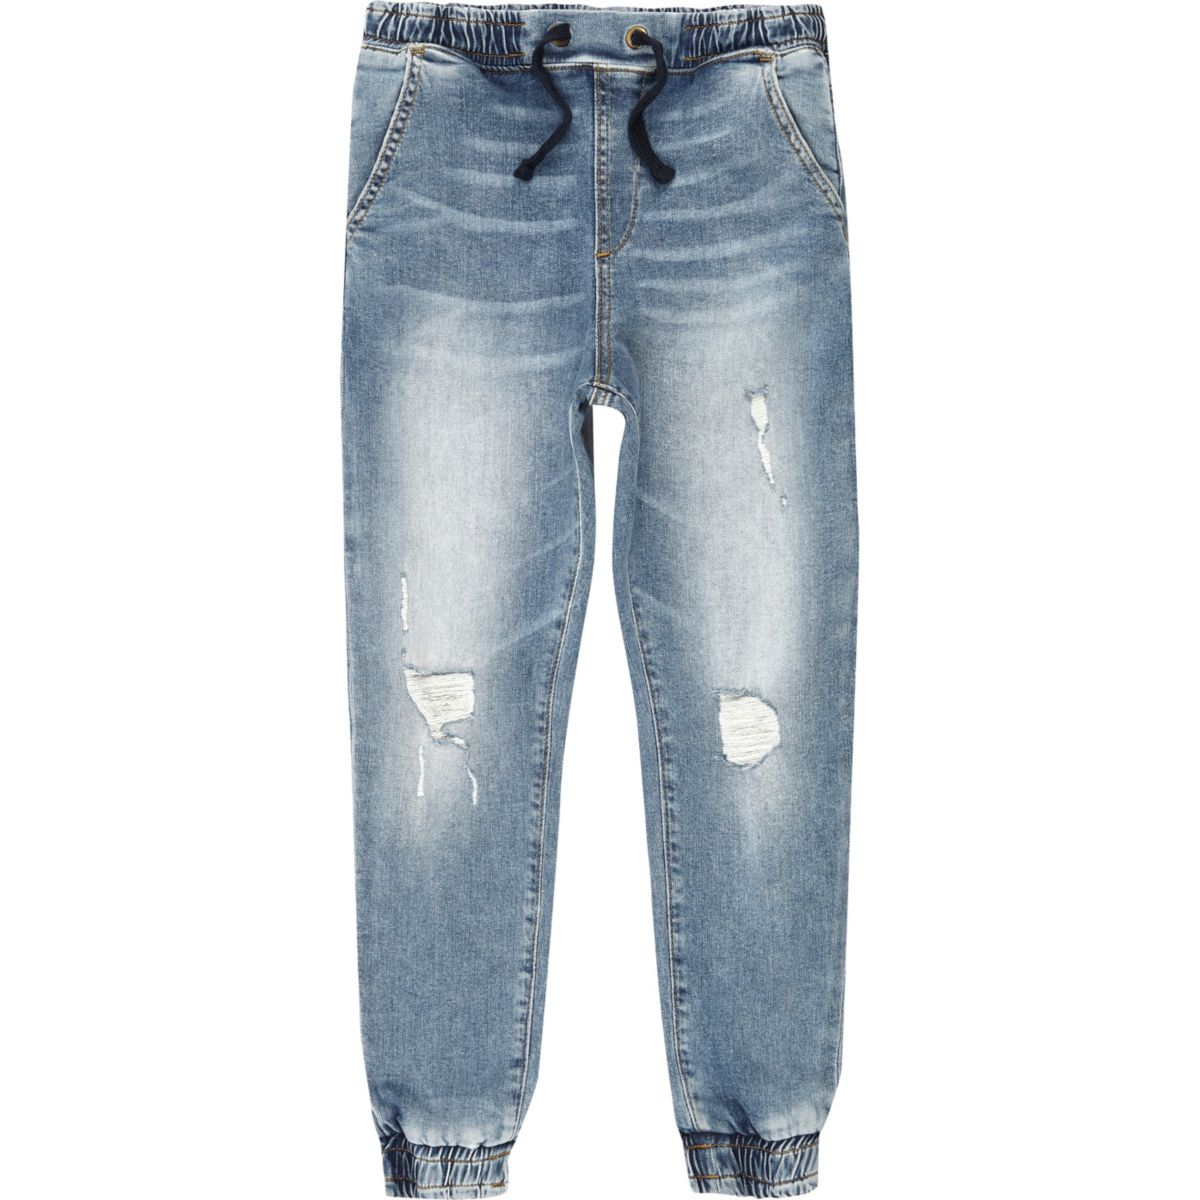 Boys blue distressed denim jogger jeans